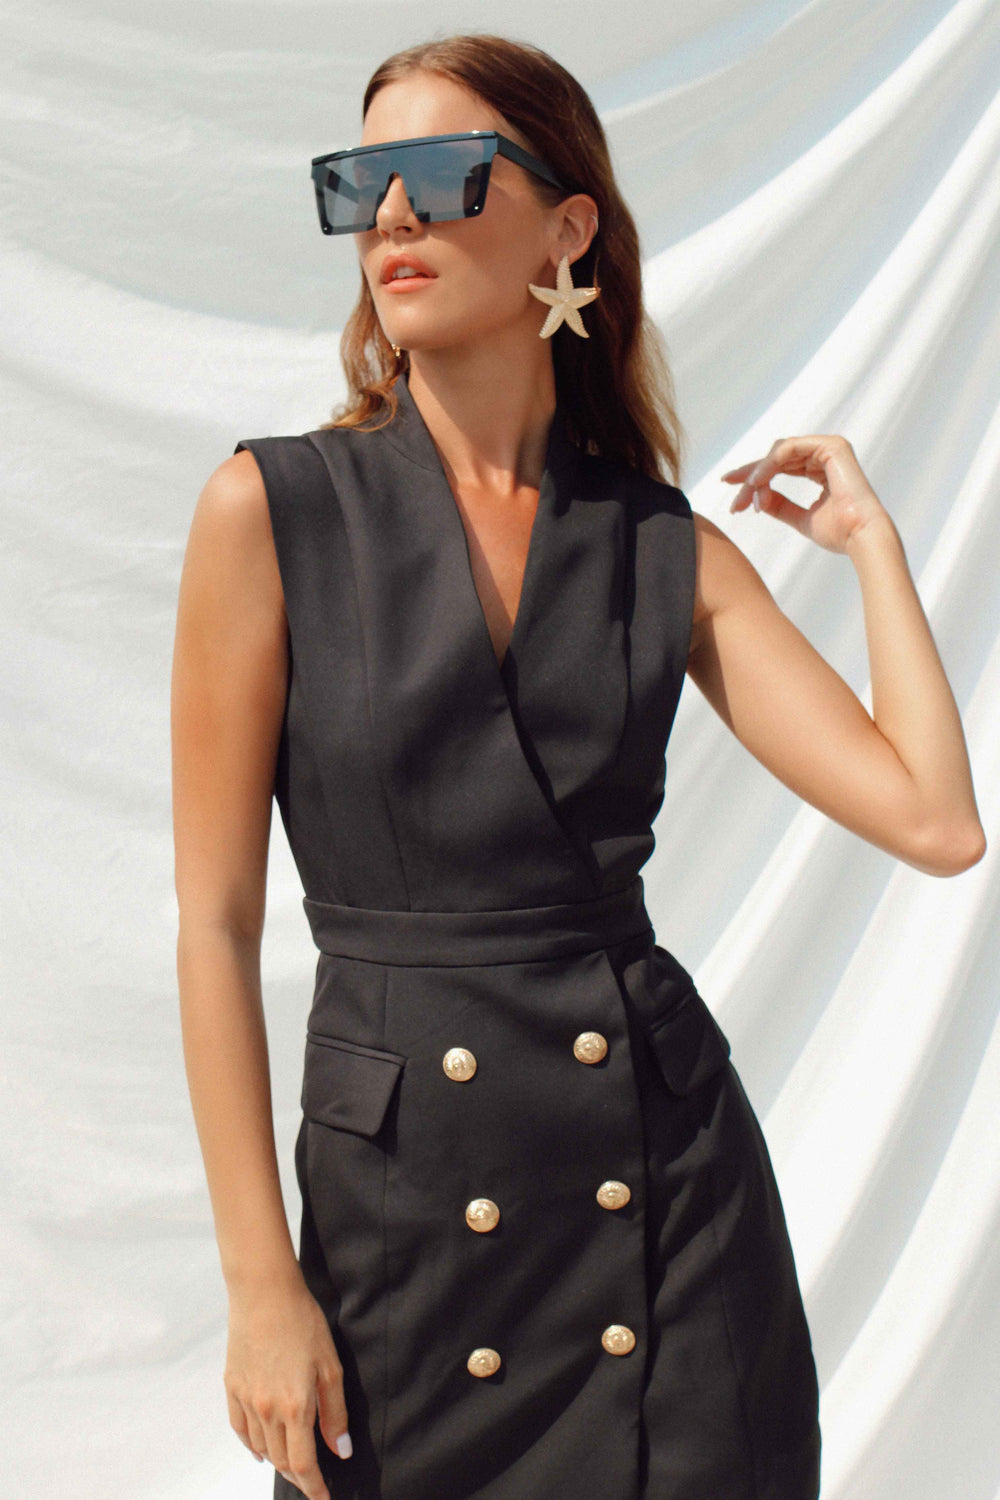 TORI DRESS IN BLACK - Chic Le Frique